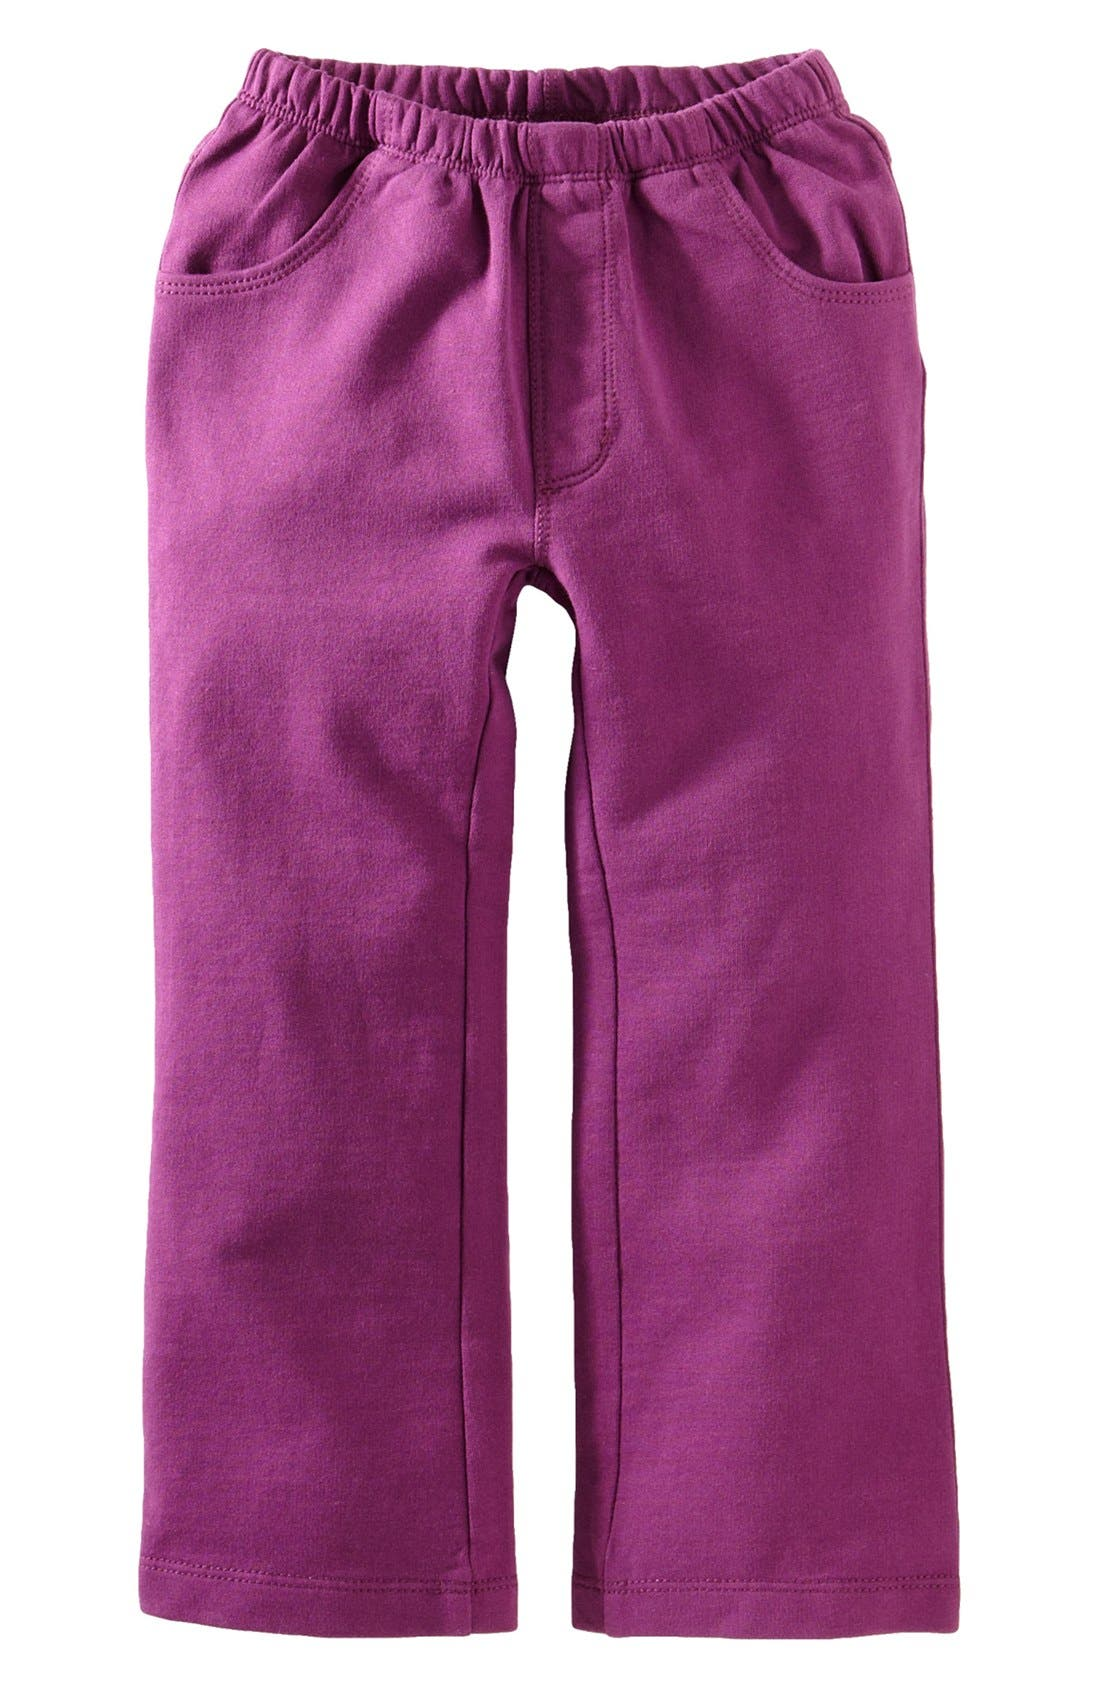 Alternate Image 1 Selected - Tea Collection Bootcut French Terry Pants (Little Girls & Big Girls)